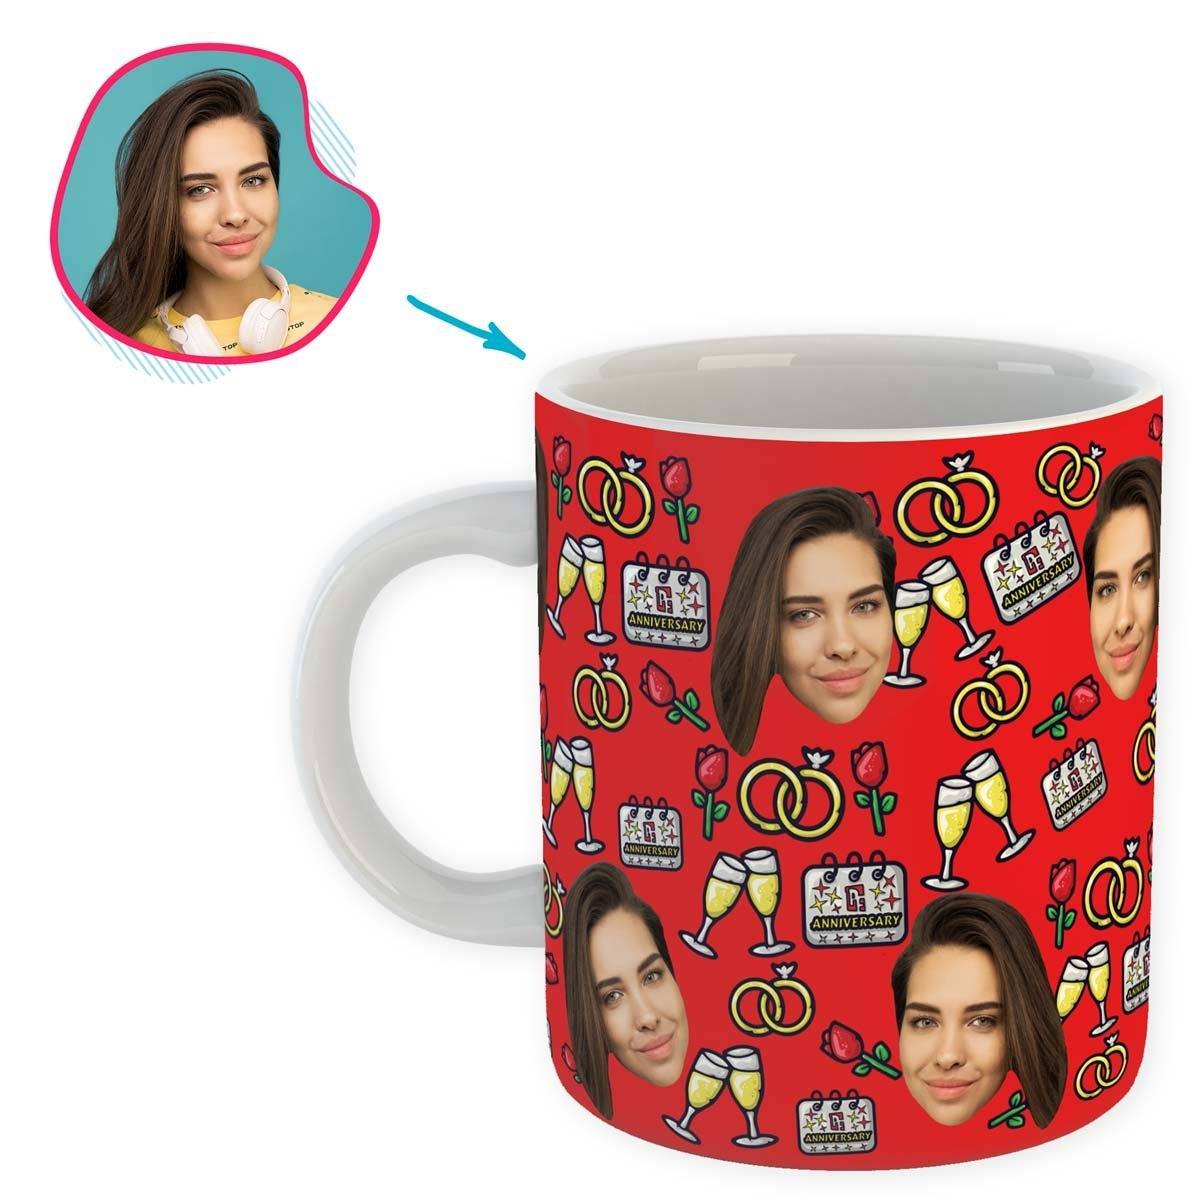 Red Anniversary personalized mug with photo of face printed on it